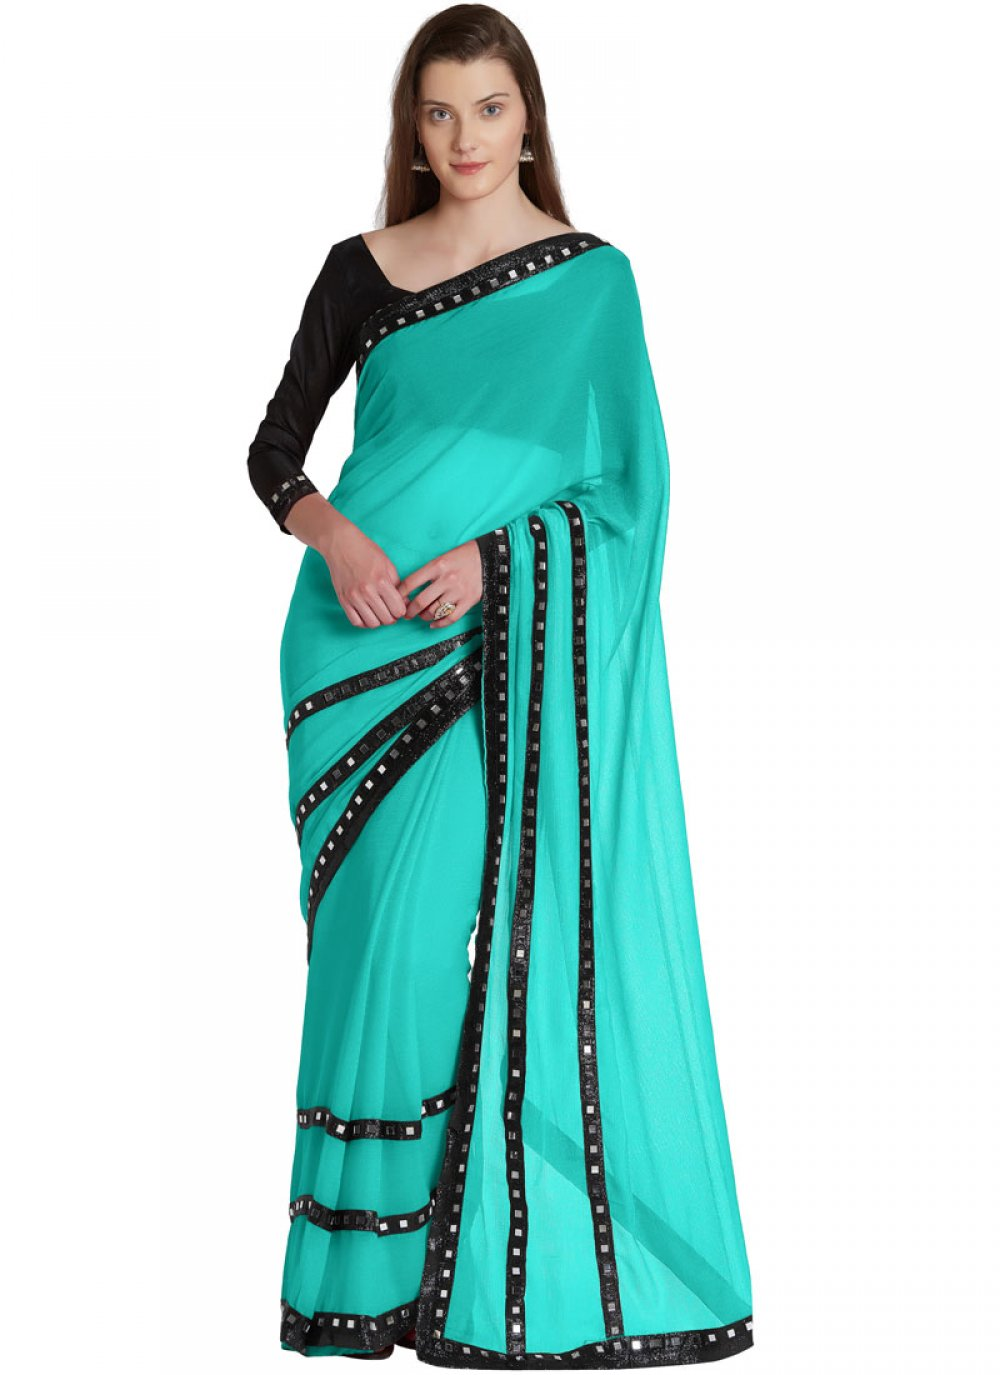 Lace Faux Chiffon Designer Saree in Turquoise